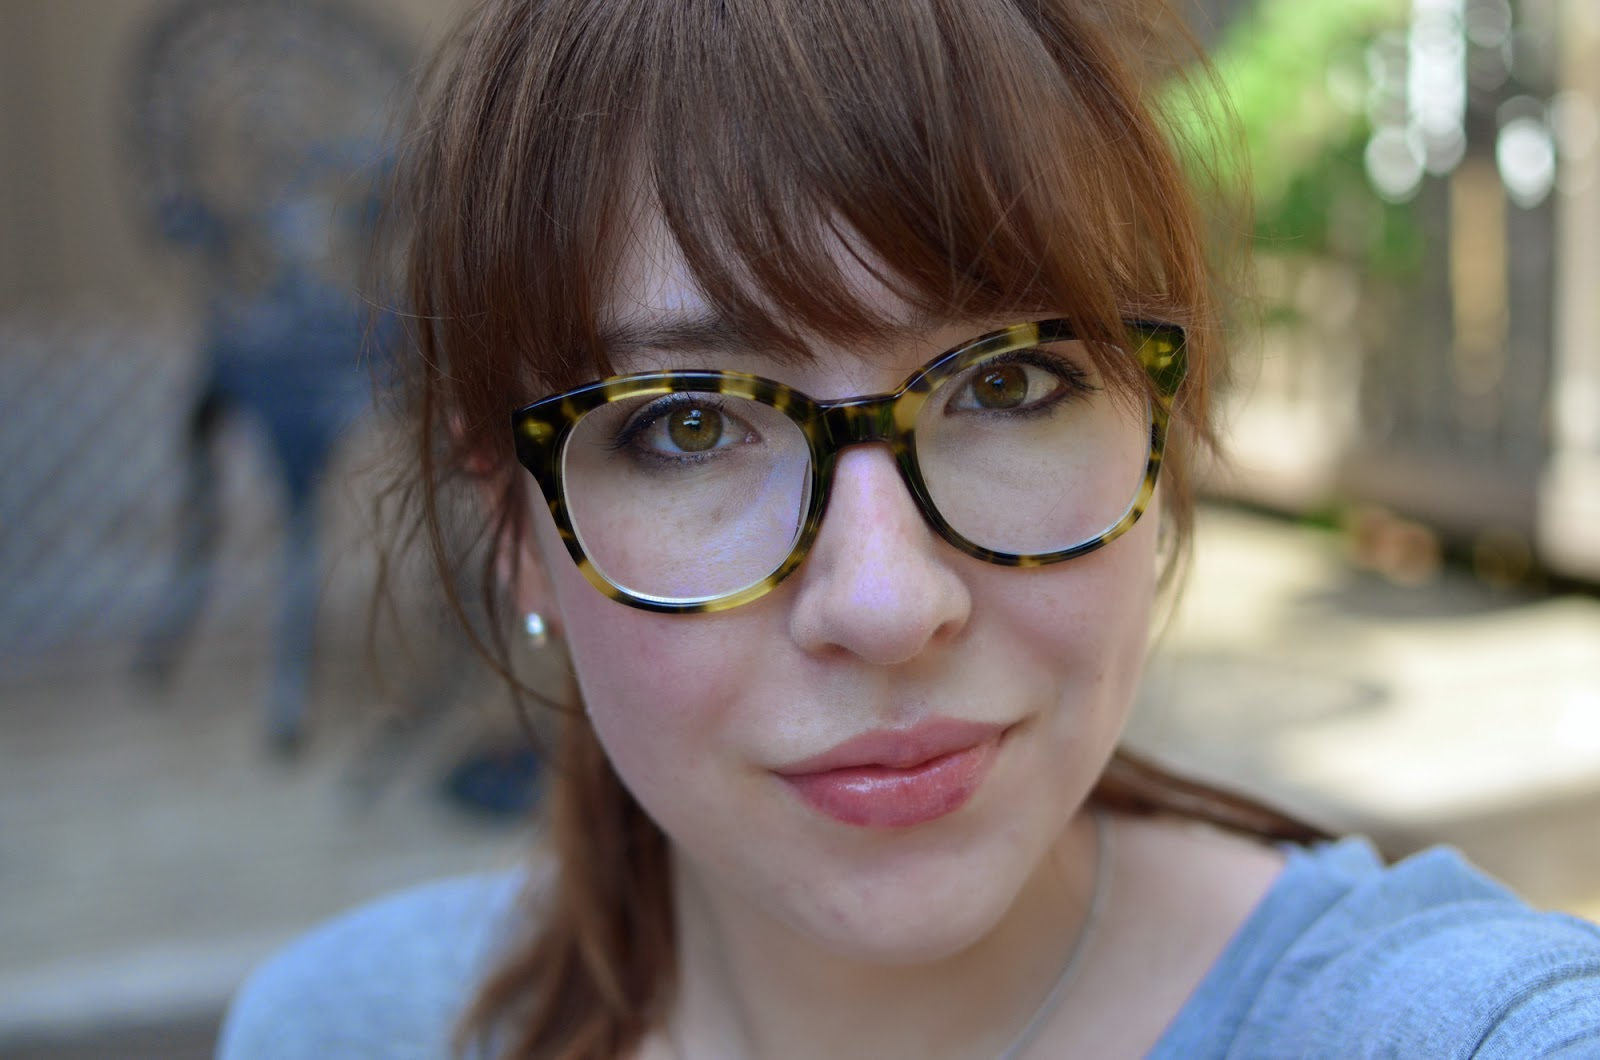 Wearing Warby Parker Mallory glasses in Gimlet Tortoise